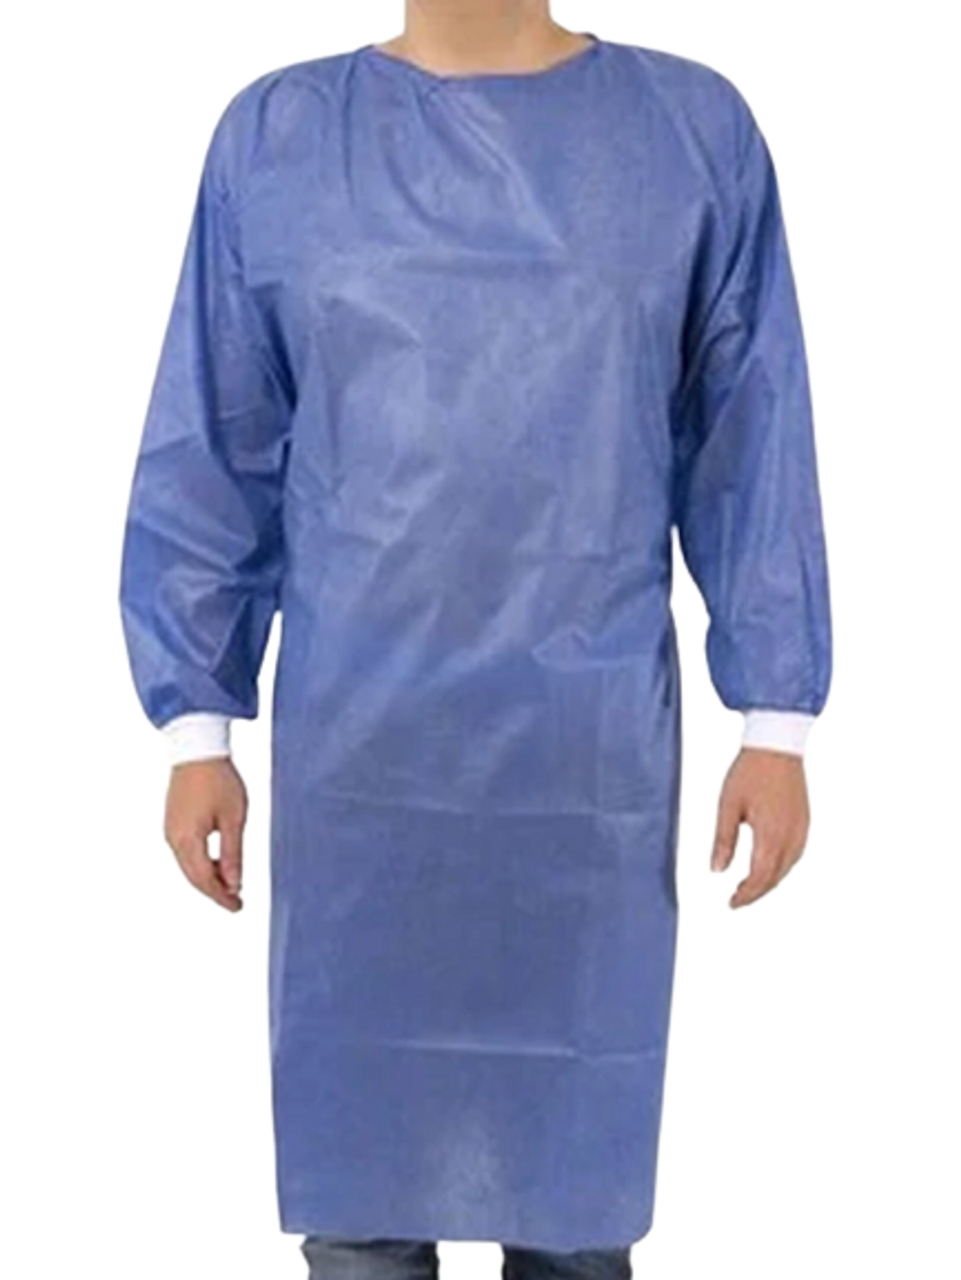 25 Gram Level 2 Disposable Medical Gown (10-Pack)